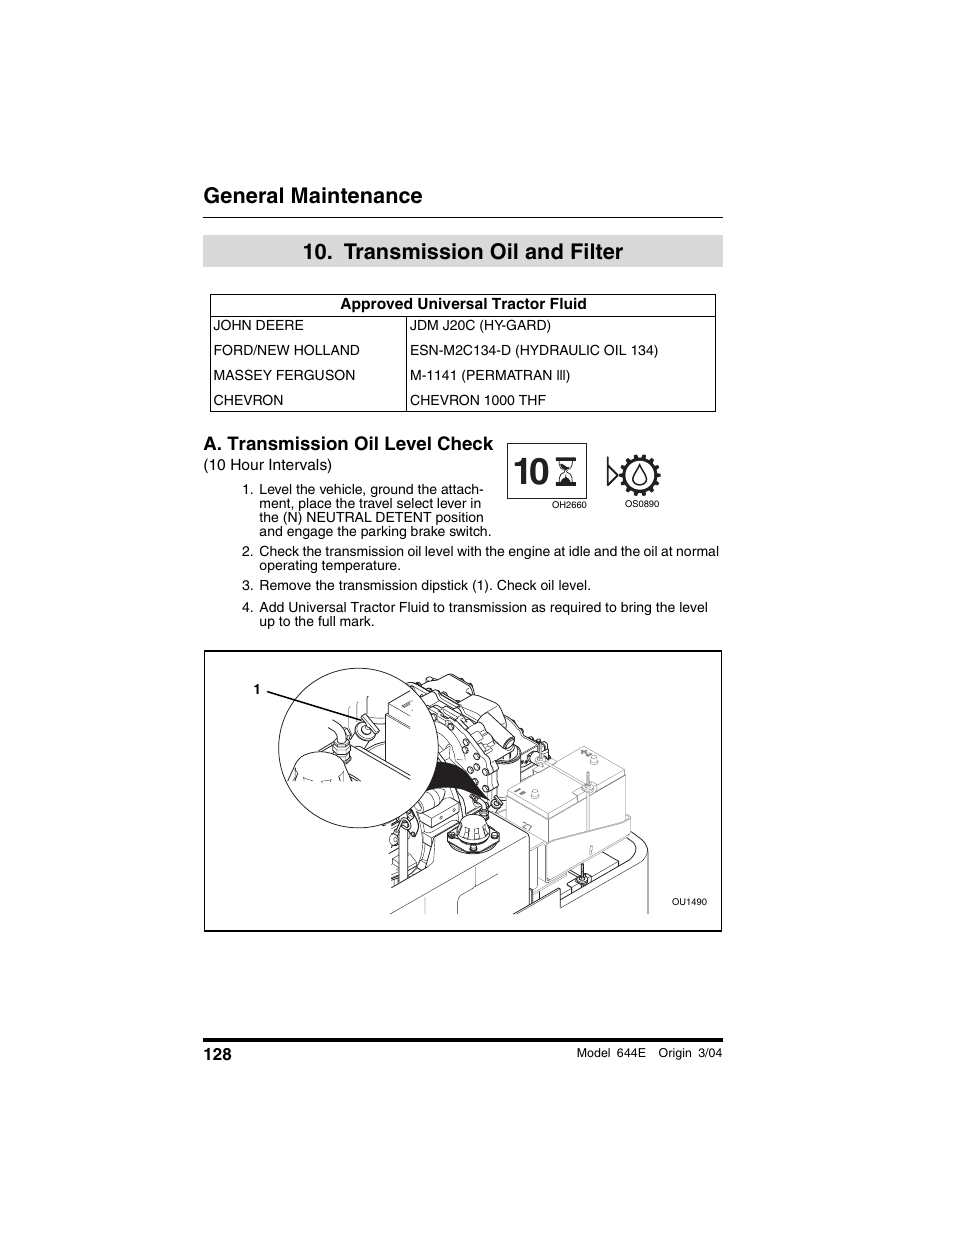 Transmission Oil And Filter Approved Universal Tractor Fluid A